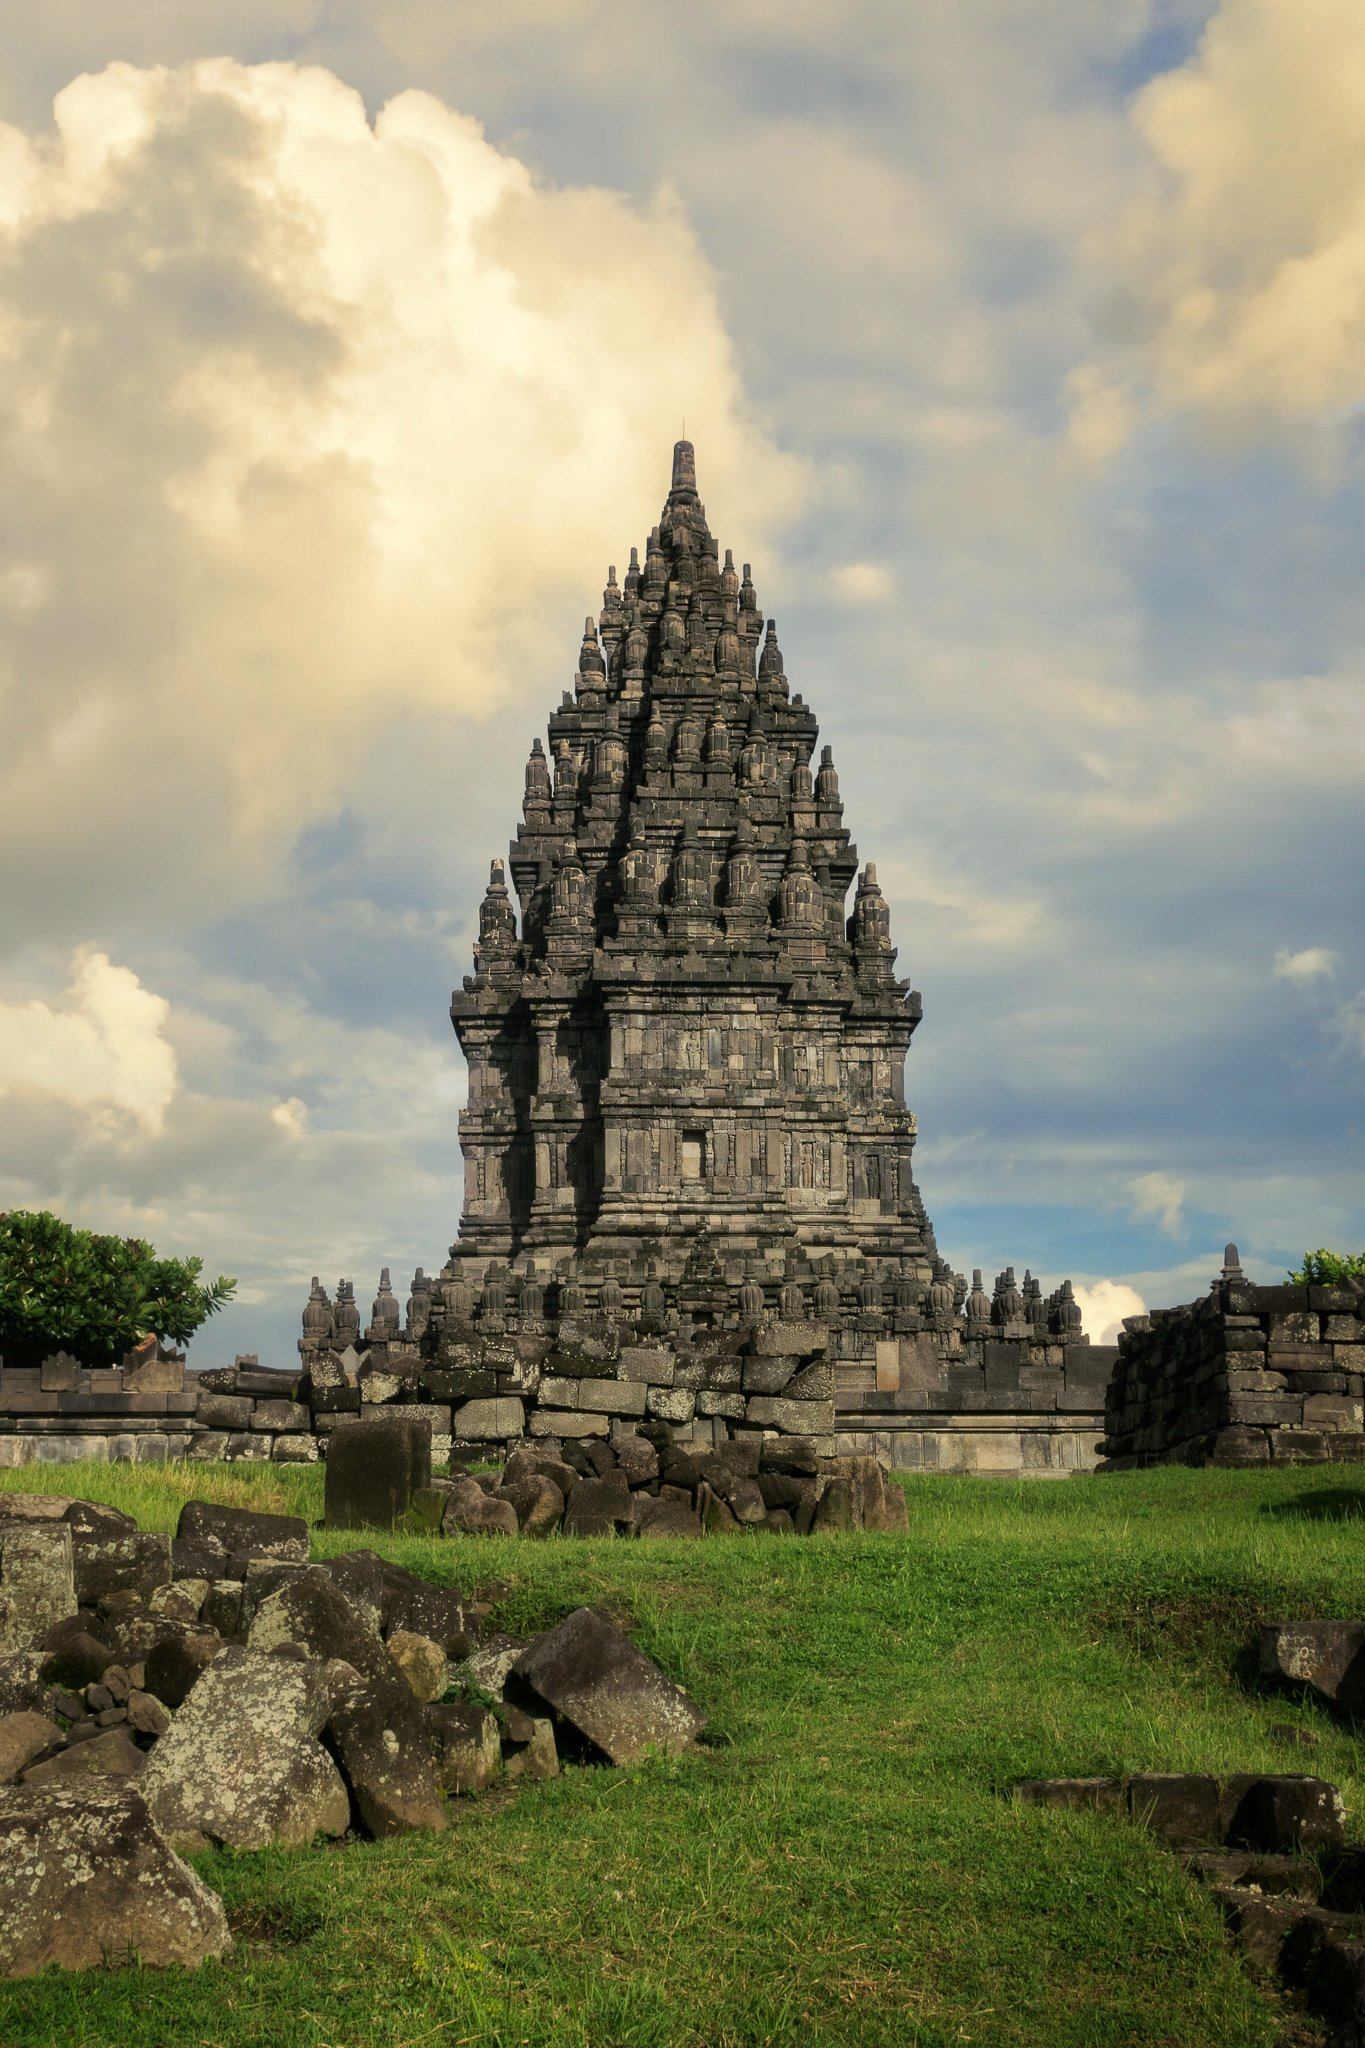 Restored Prambanan Temples #intentionallylost